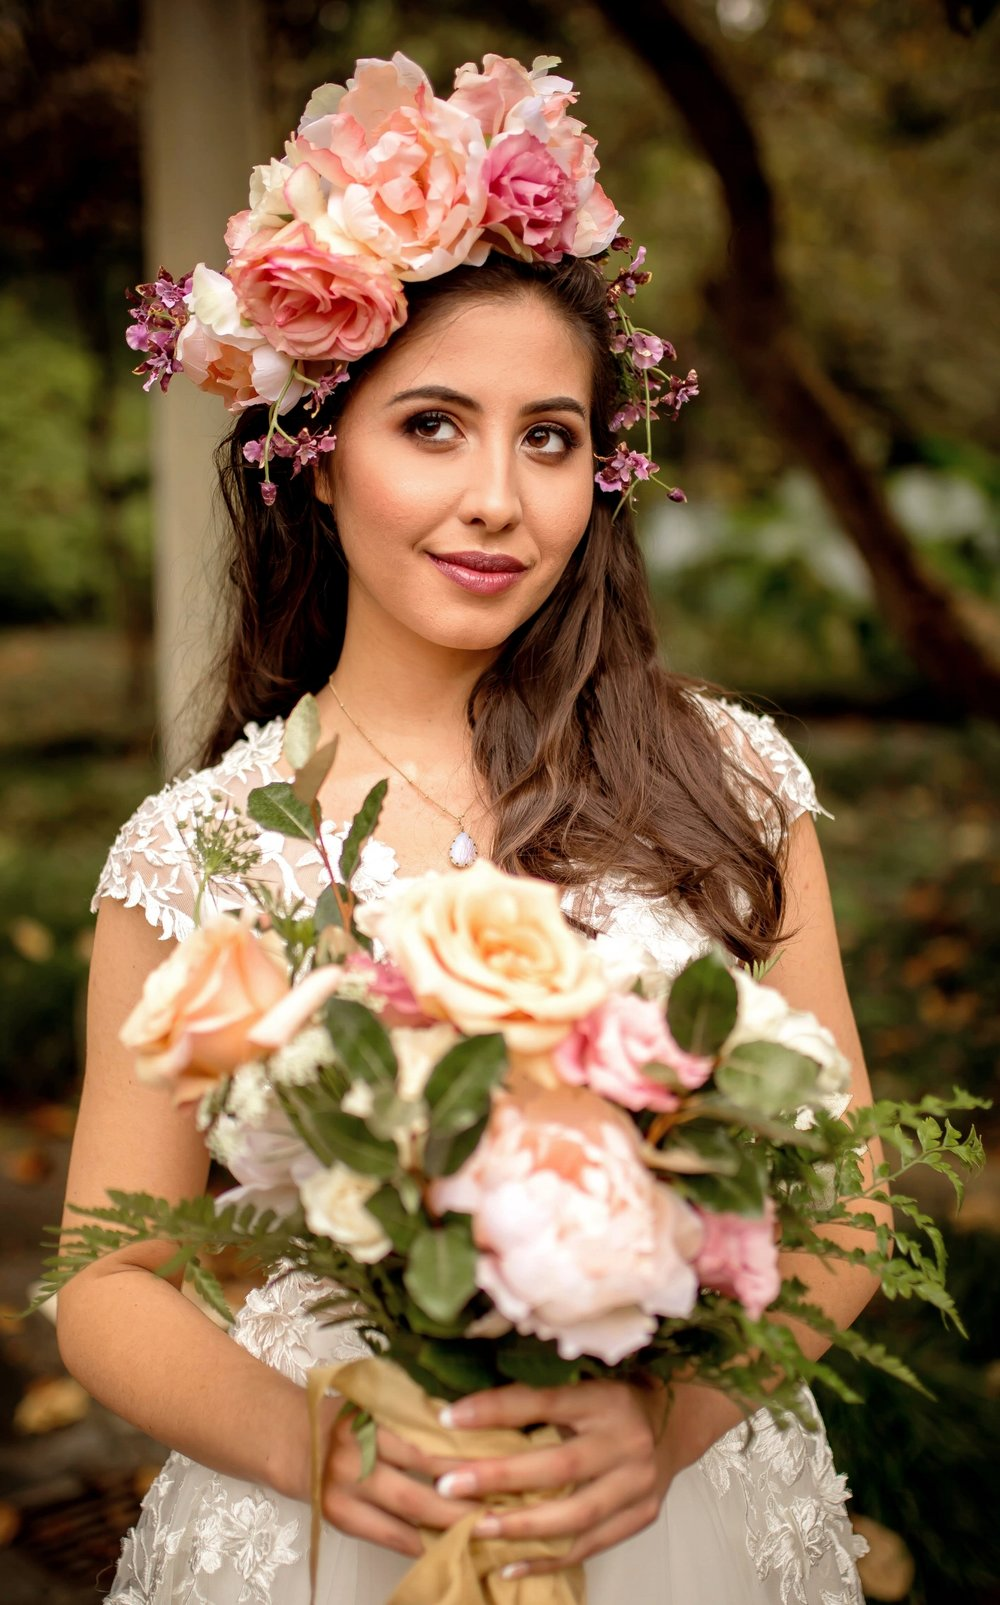 bredice-beauty-hair-makeup-flower-crown-nyc-atlanta-savannah-fashion.jpg